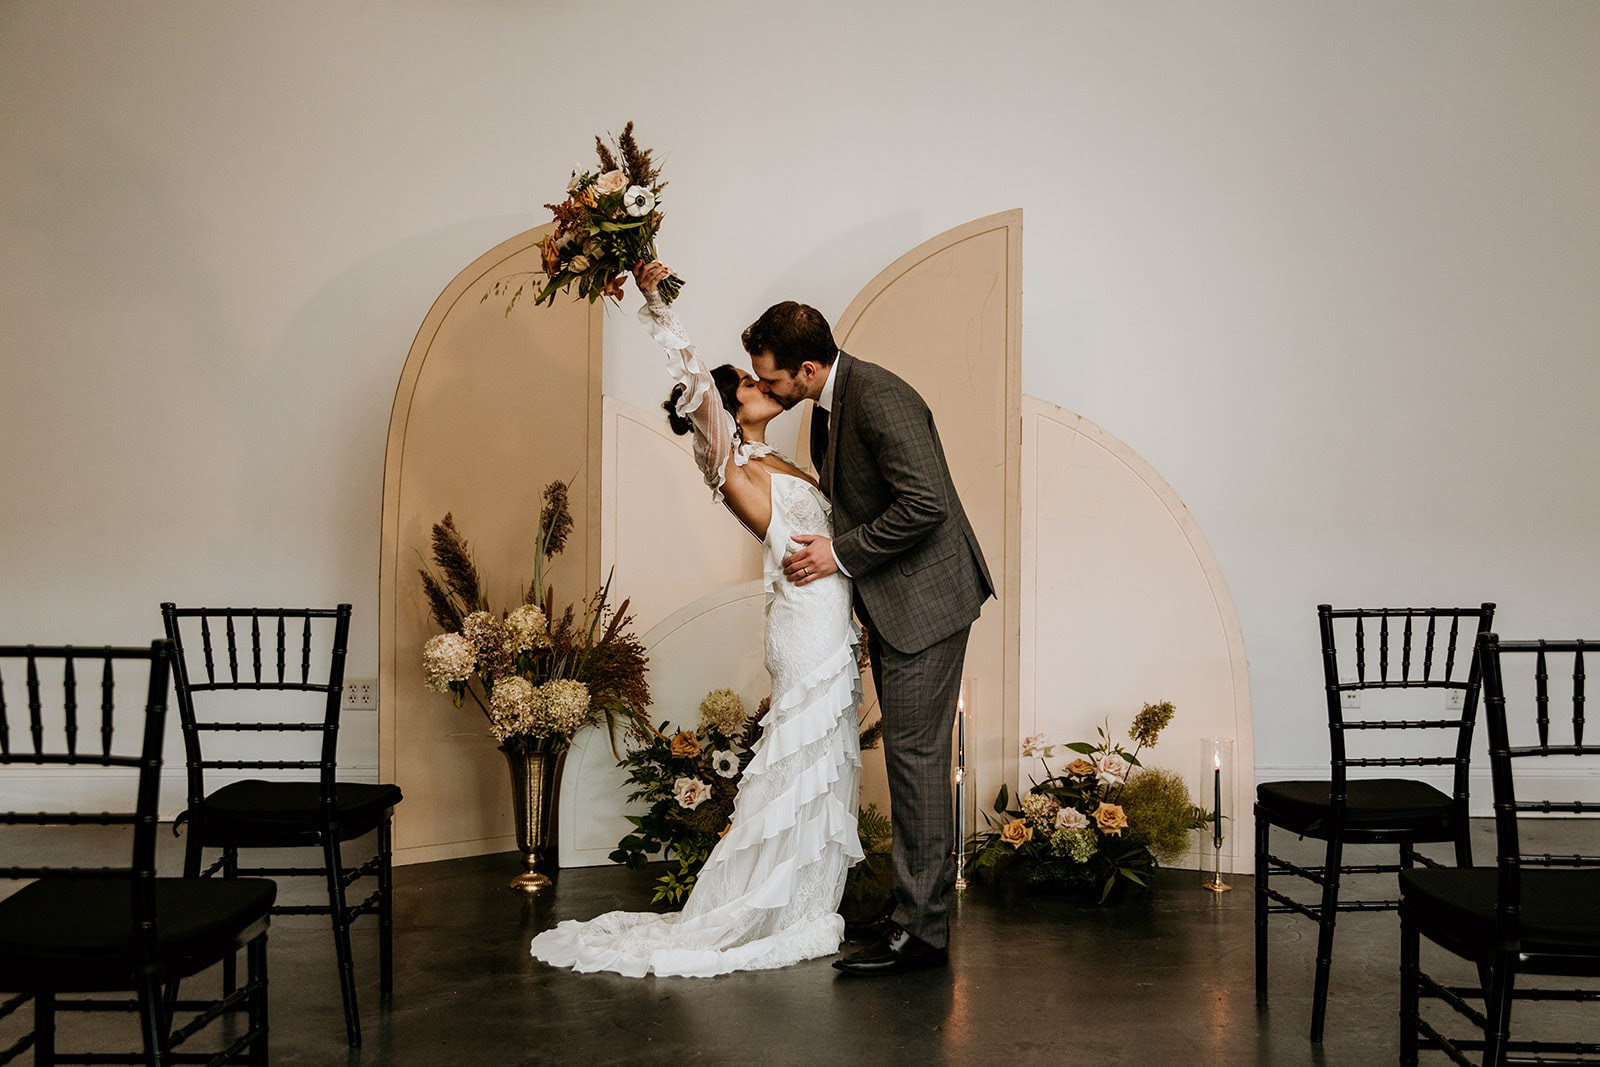 Wedding ceremony with neutral backdrop